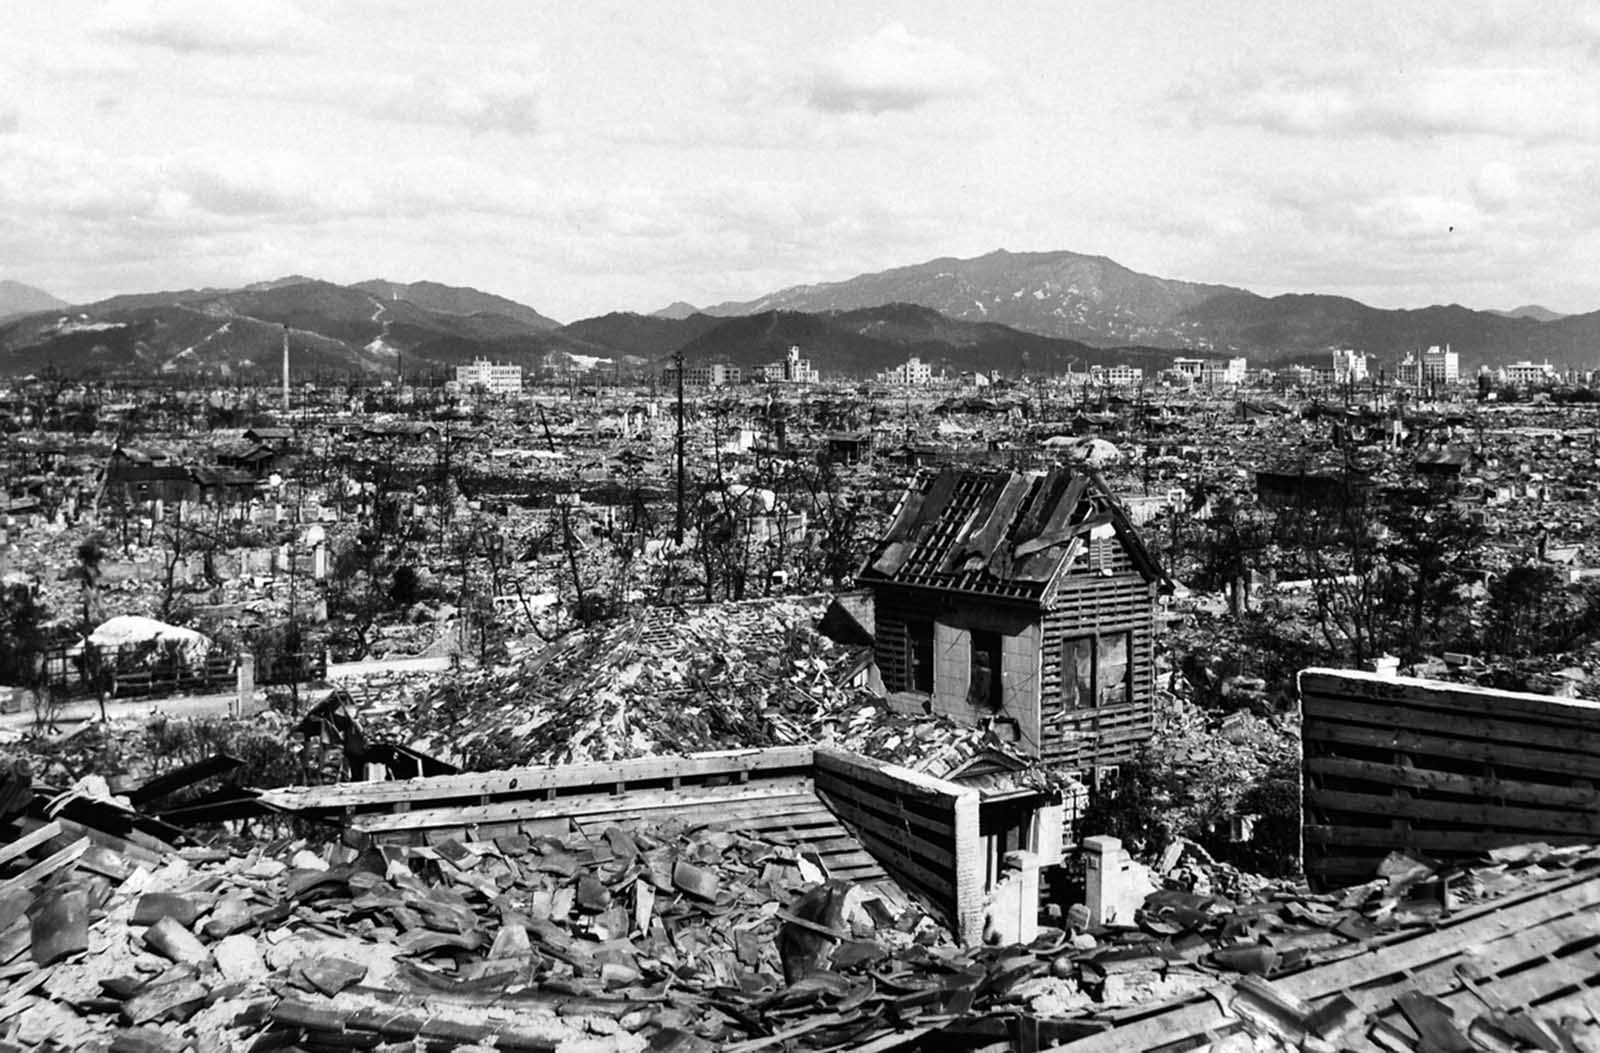 The devastated landscape of Hiroshima, months after the bombing.